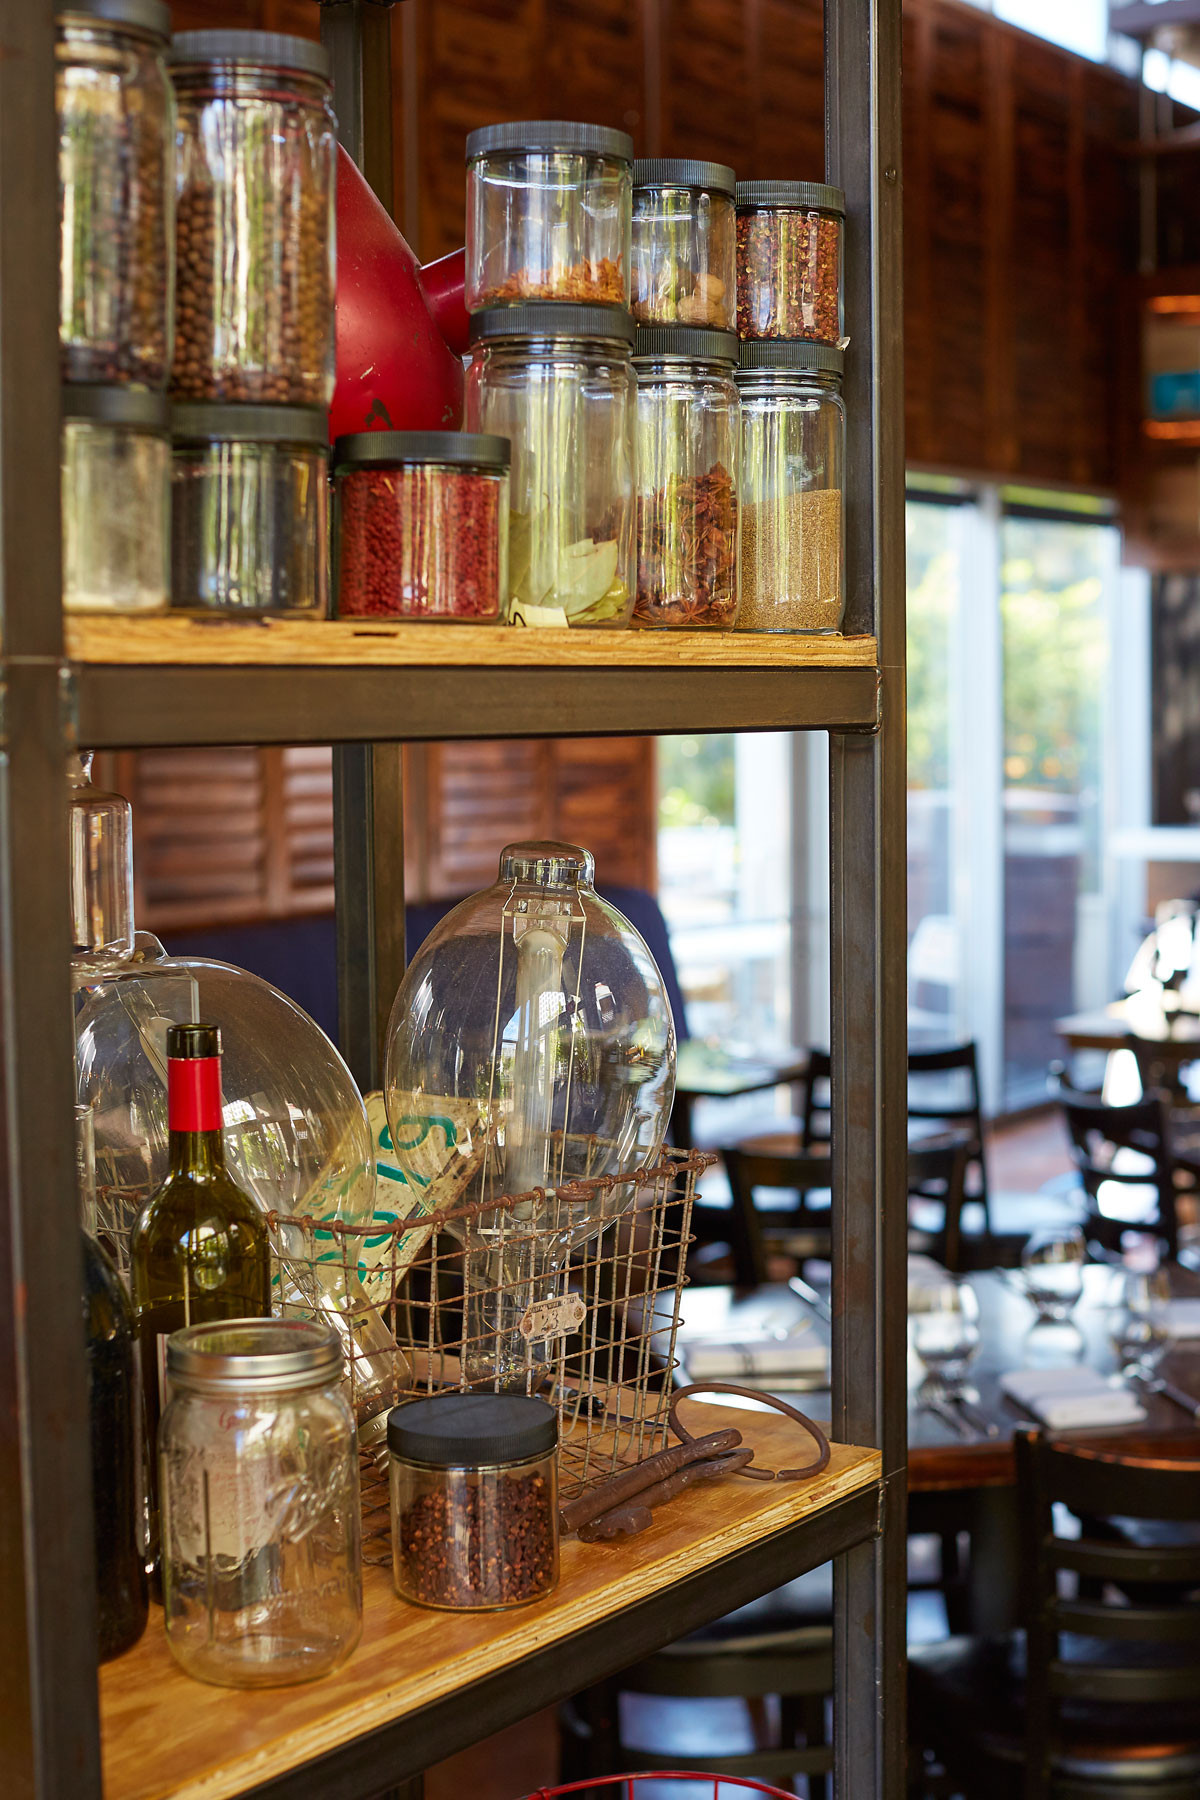 Best ideas about Proof And Pantry . Save or Pin Restaurant Review Proof Pantry D Magazine Now.